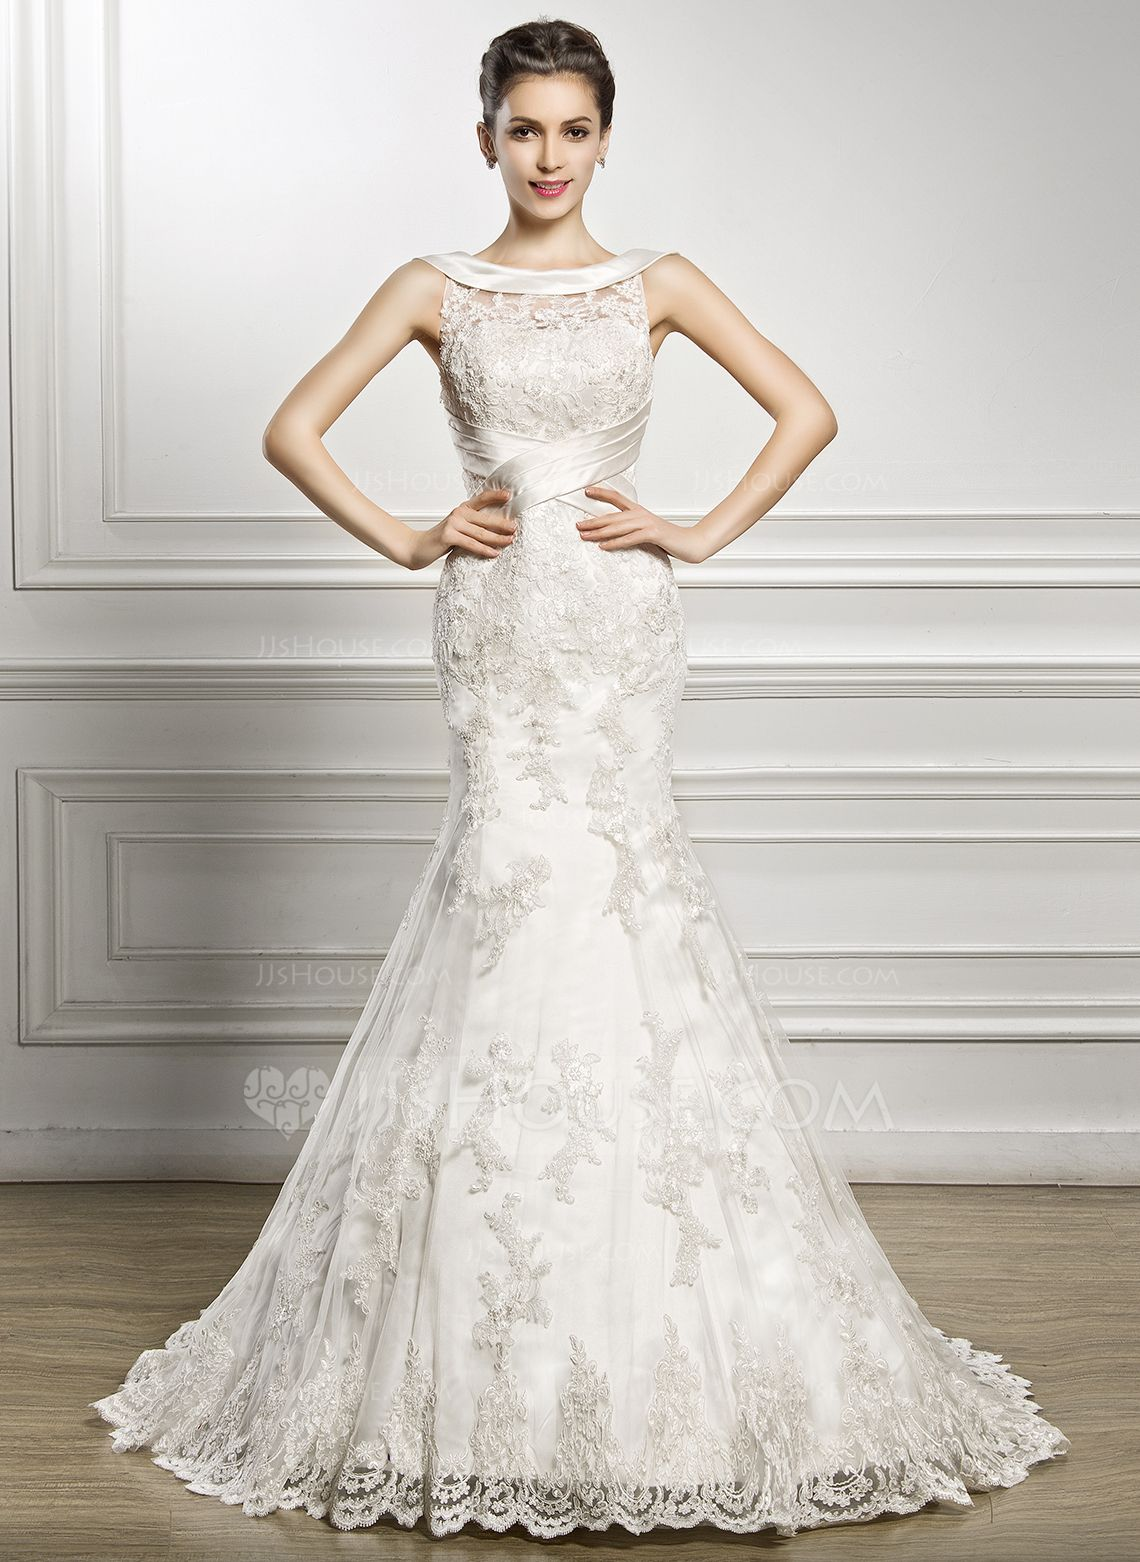 de1a0d028bab Trumpet/Mermaid Scoop Neck Court Train Lace Wedding Dress With Ruffle  (002056967) - JJsHouse